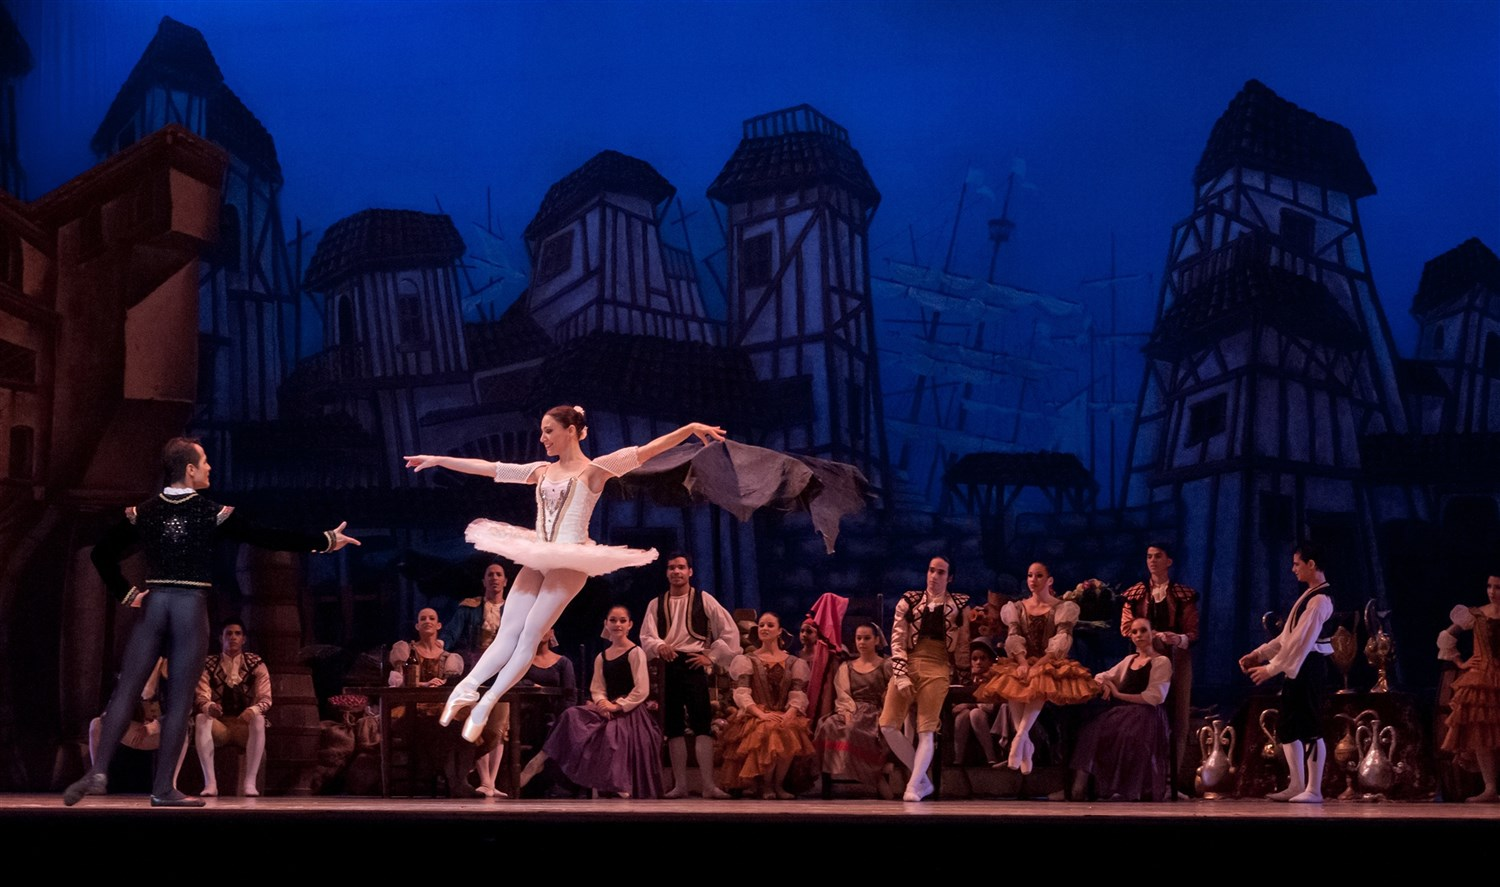 Skiing exceptional mountains by day then enjoying exceptional ballet by night is standard operating procedure in Salt Lake City. D reamstime